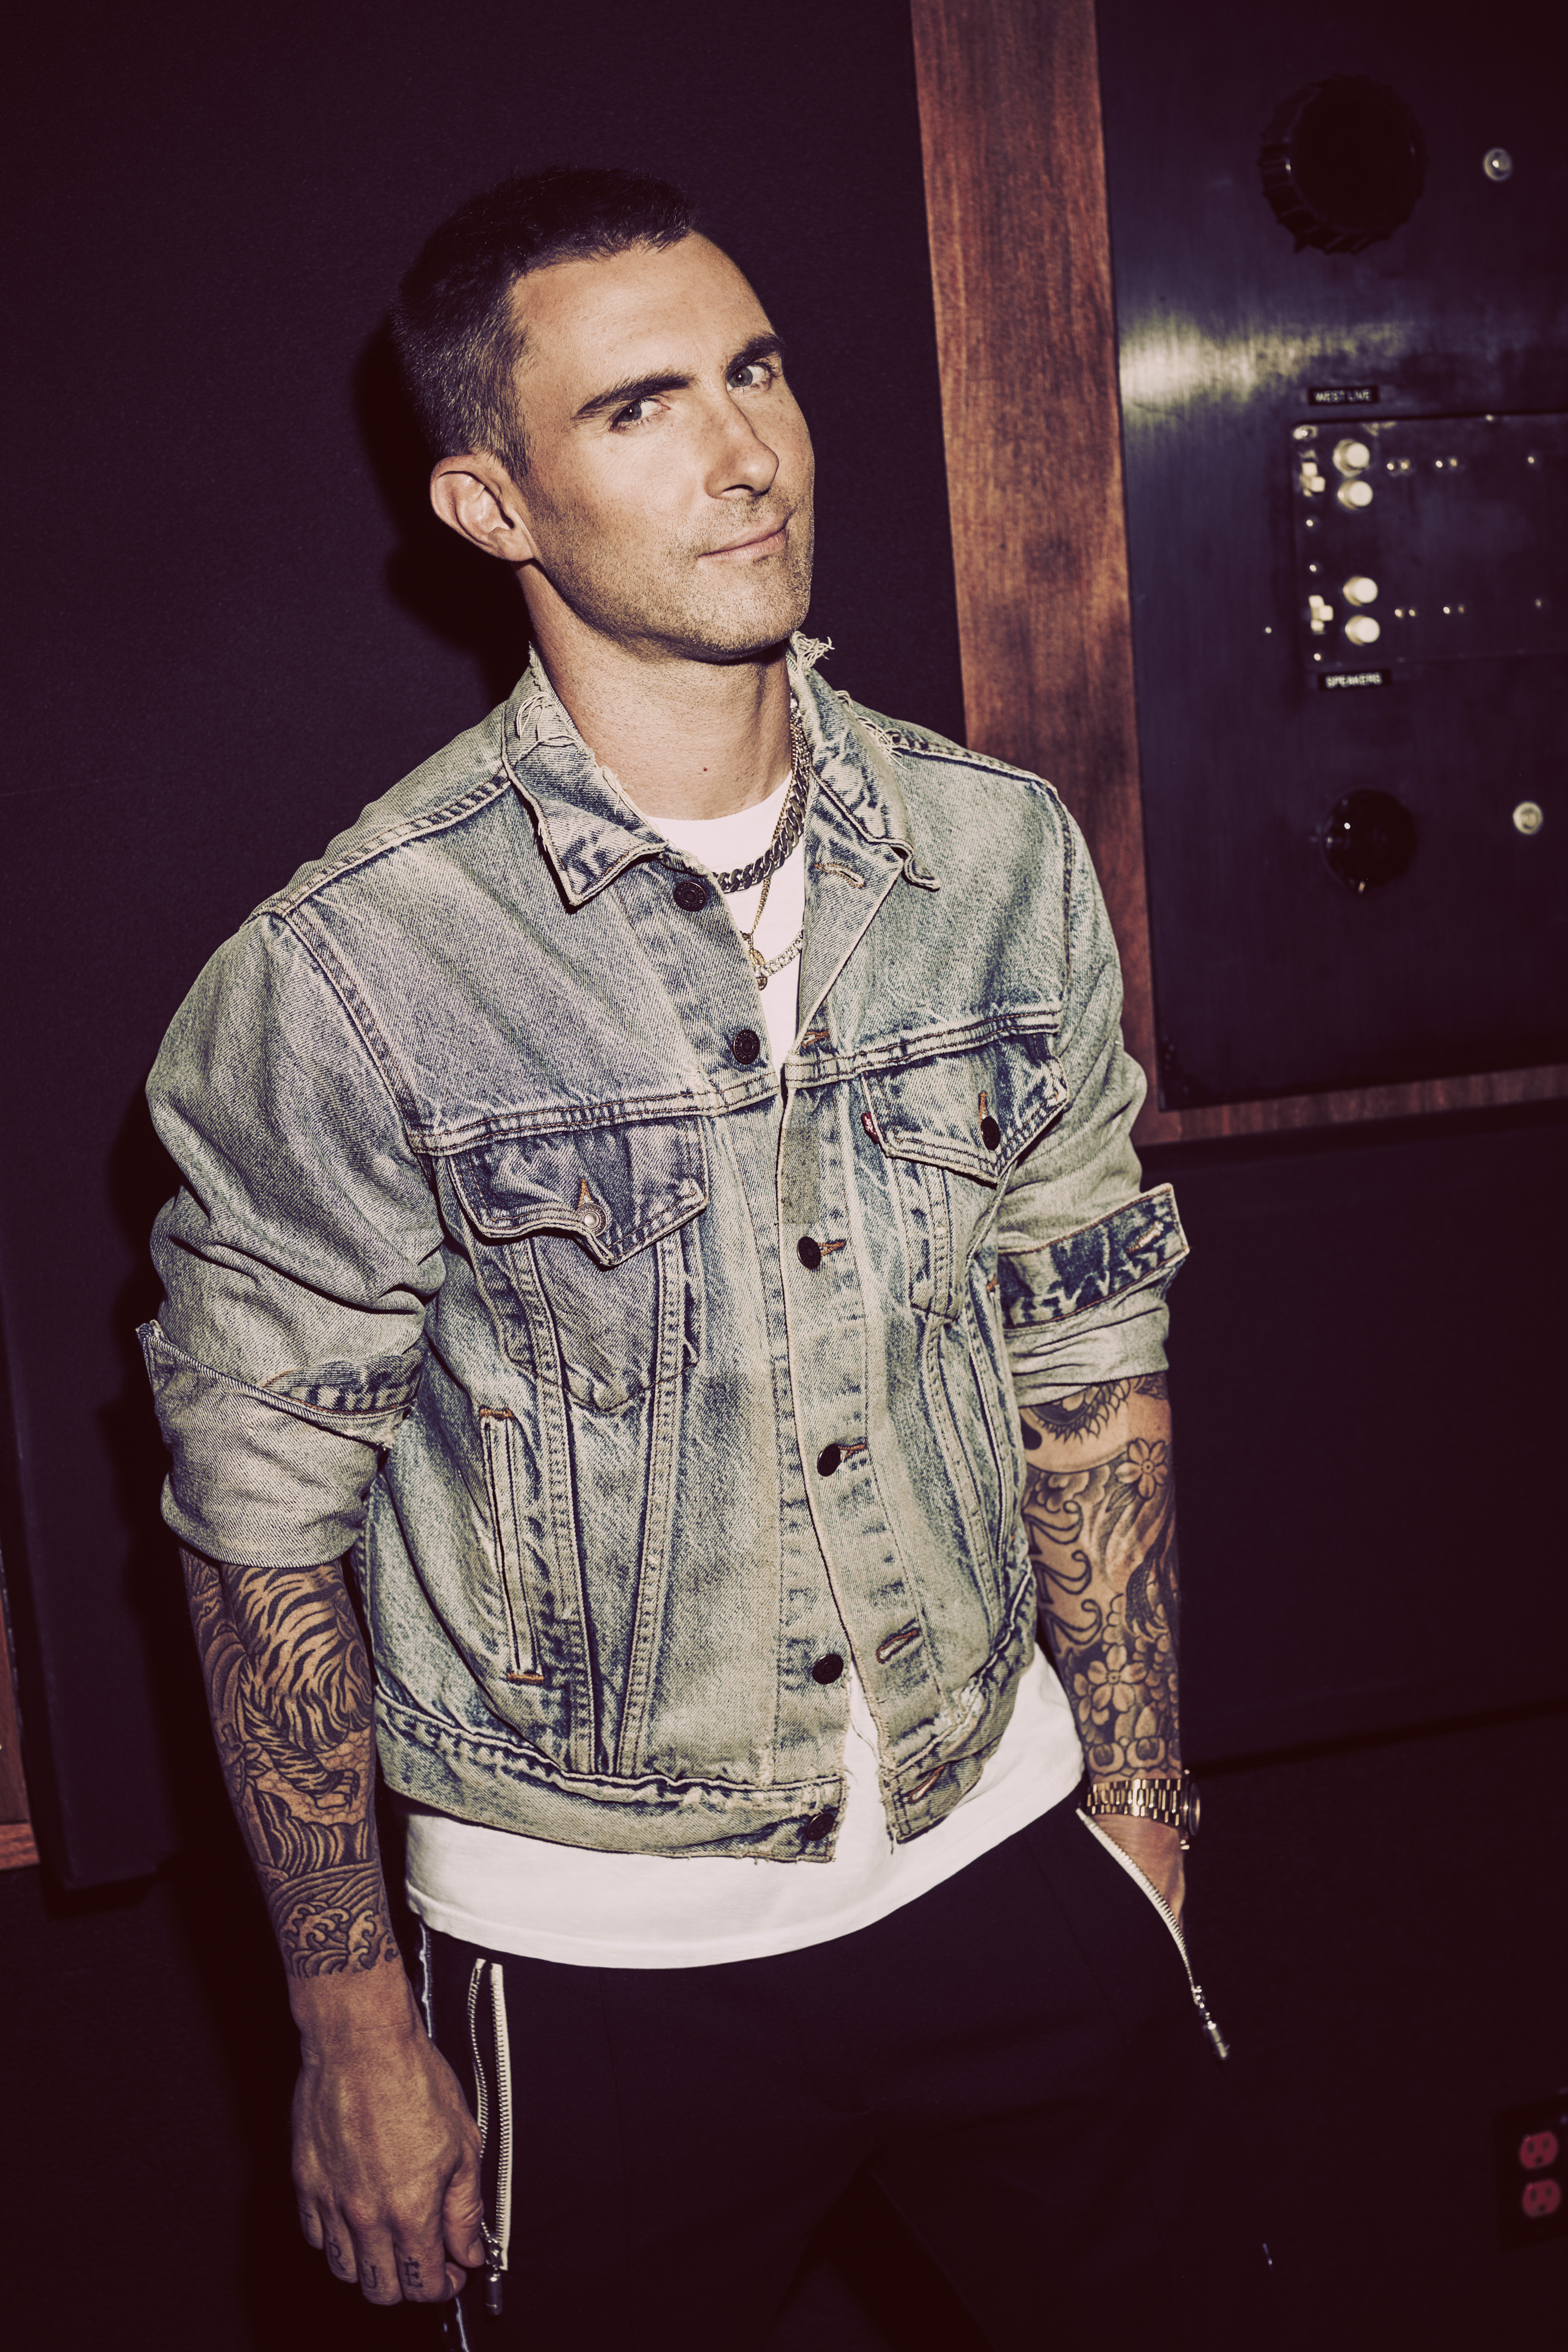 Adam Levine Jewelry : levine, jewelry, EXCLUSIVE:, Levine, Named, Spokesperson, L'Oréal, Paris, Expert